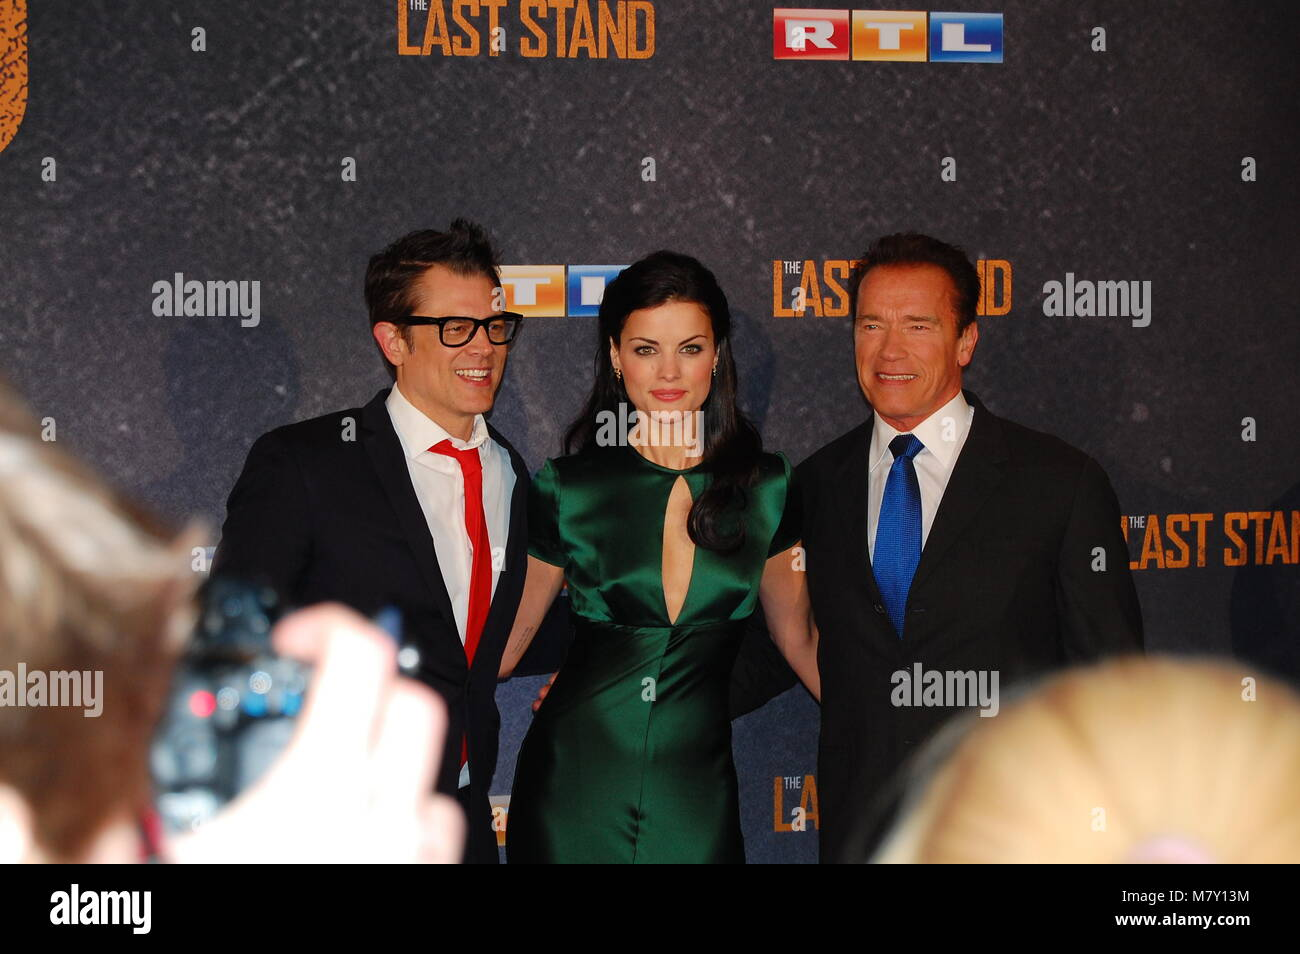 Johnny Knoxville, Jamie Alexander, Arnold Schwarzenegger 'The Last Stand' Cologne Premiere at Astor Film Lounge Stock Photo